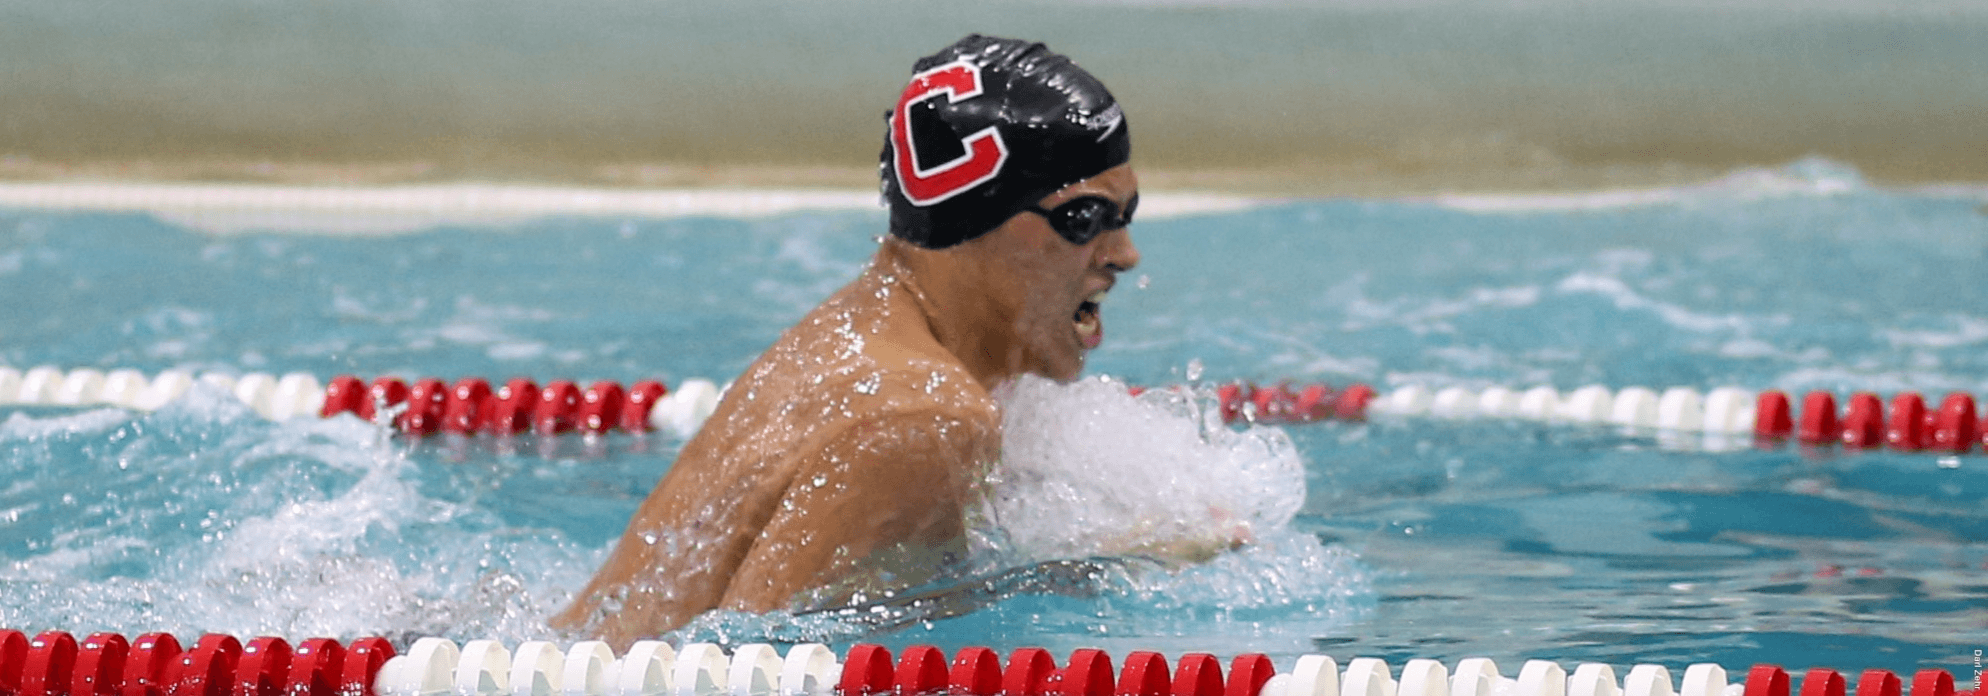 Evdokimov Posts 53.79 100 Breast as 3 Cornell Pool Records Fall